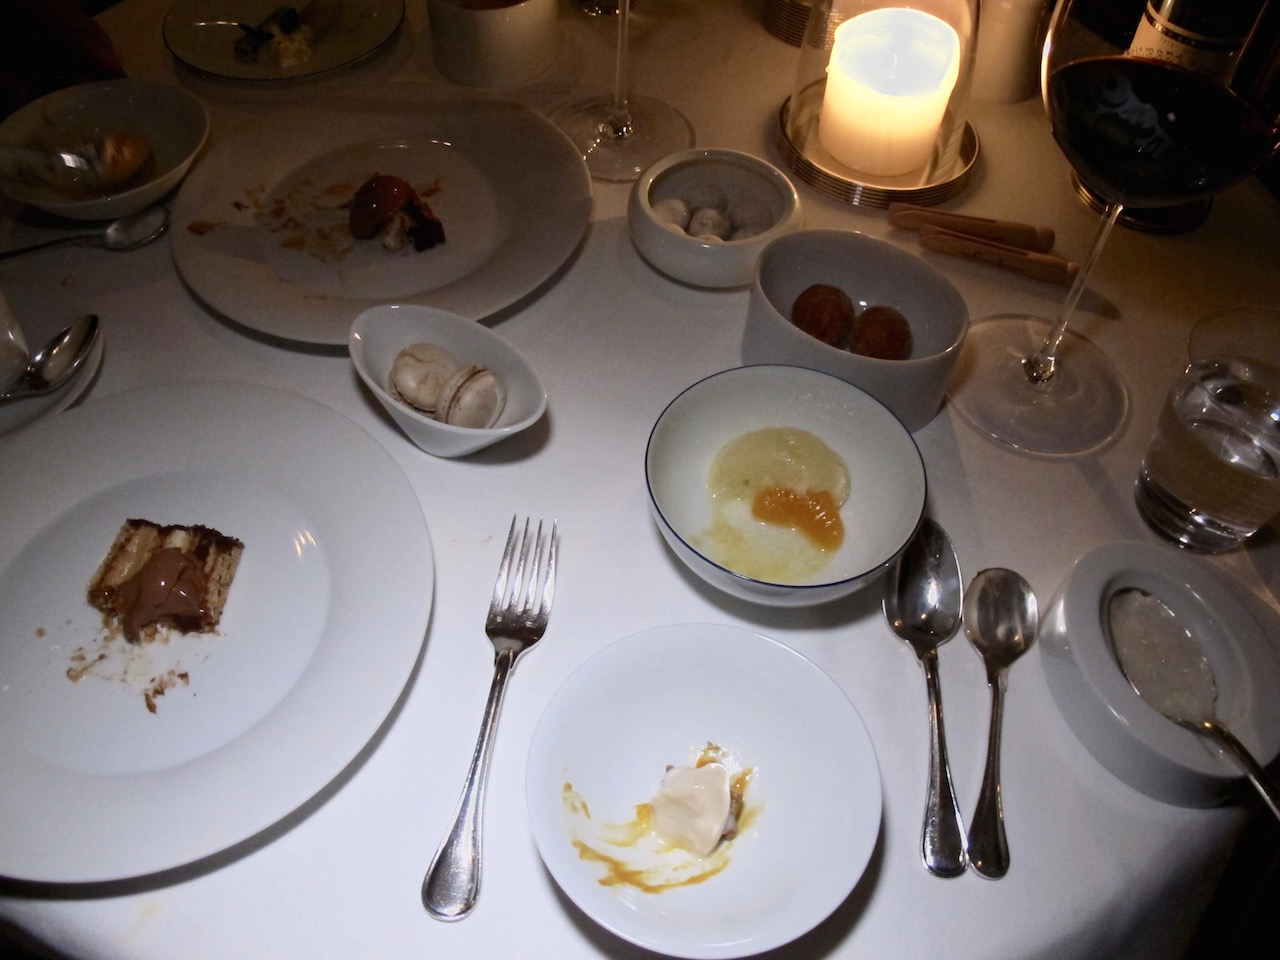 French Laundry dessert course